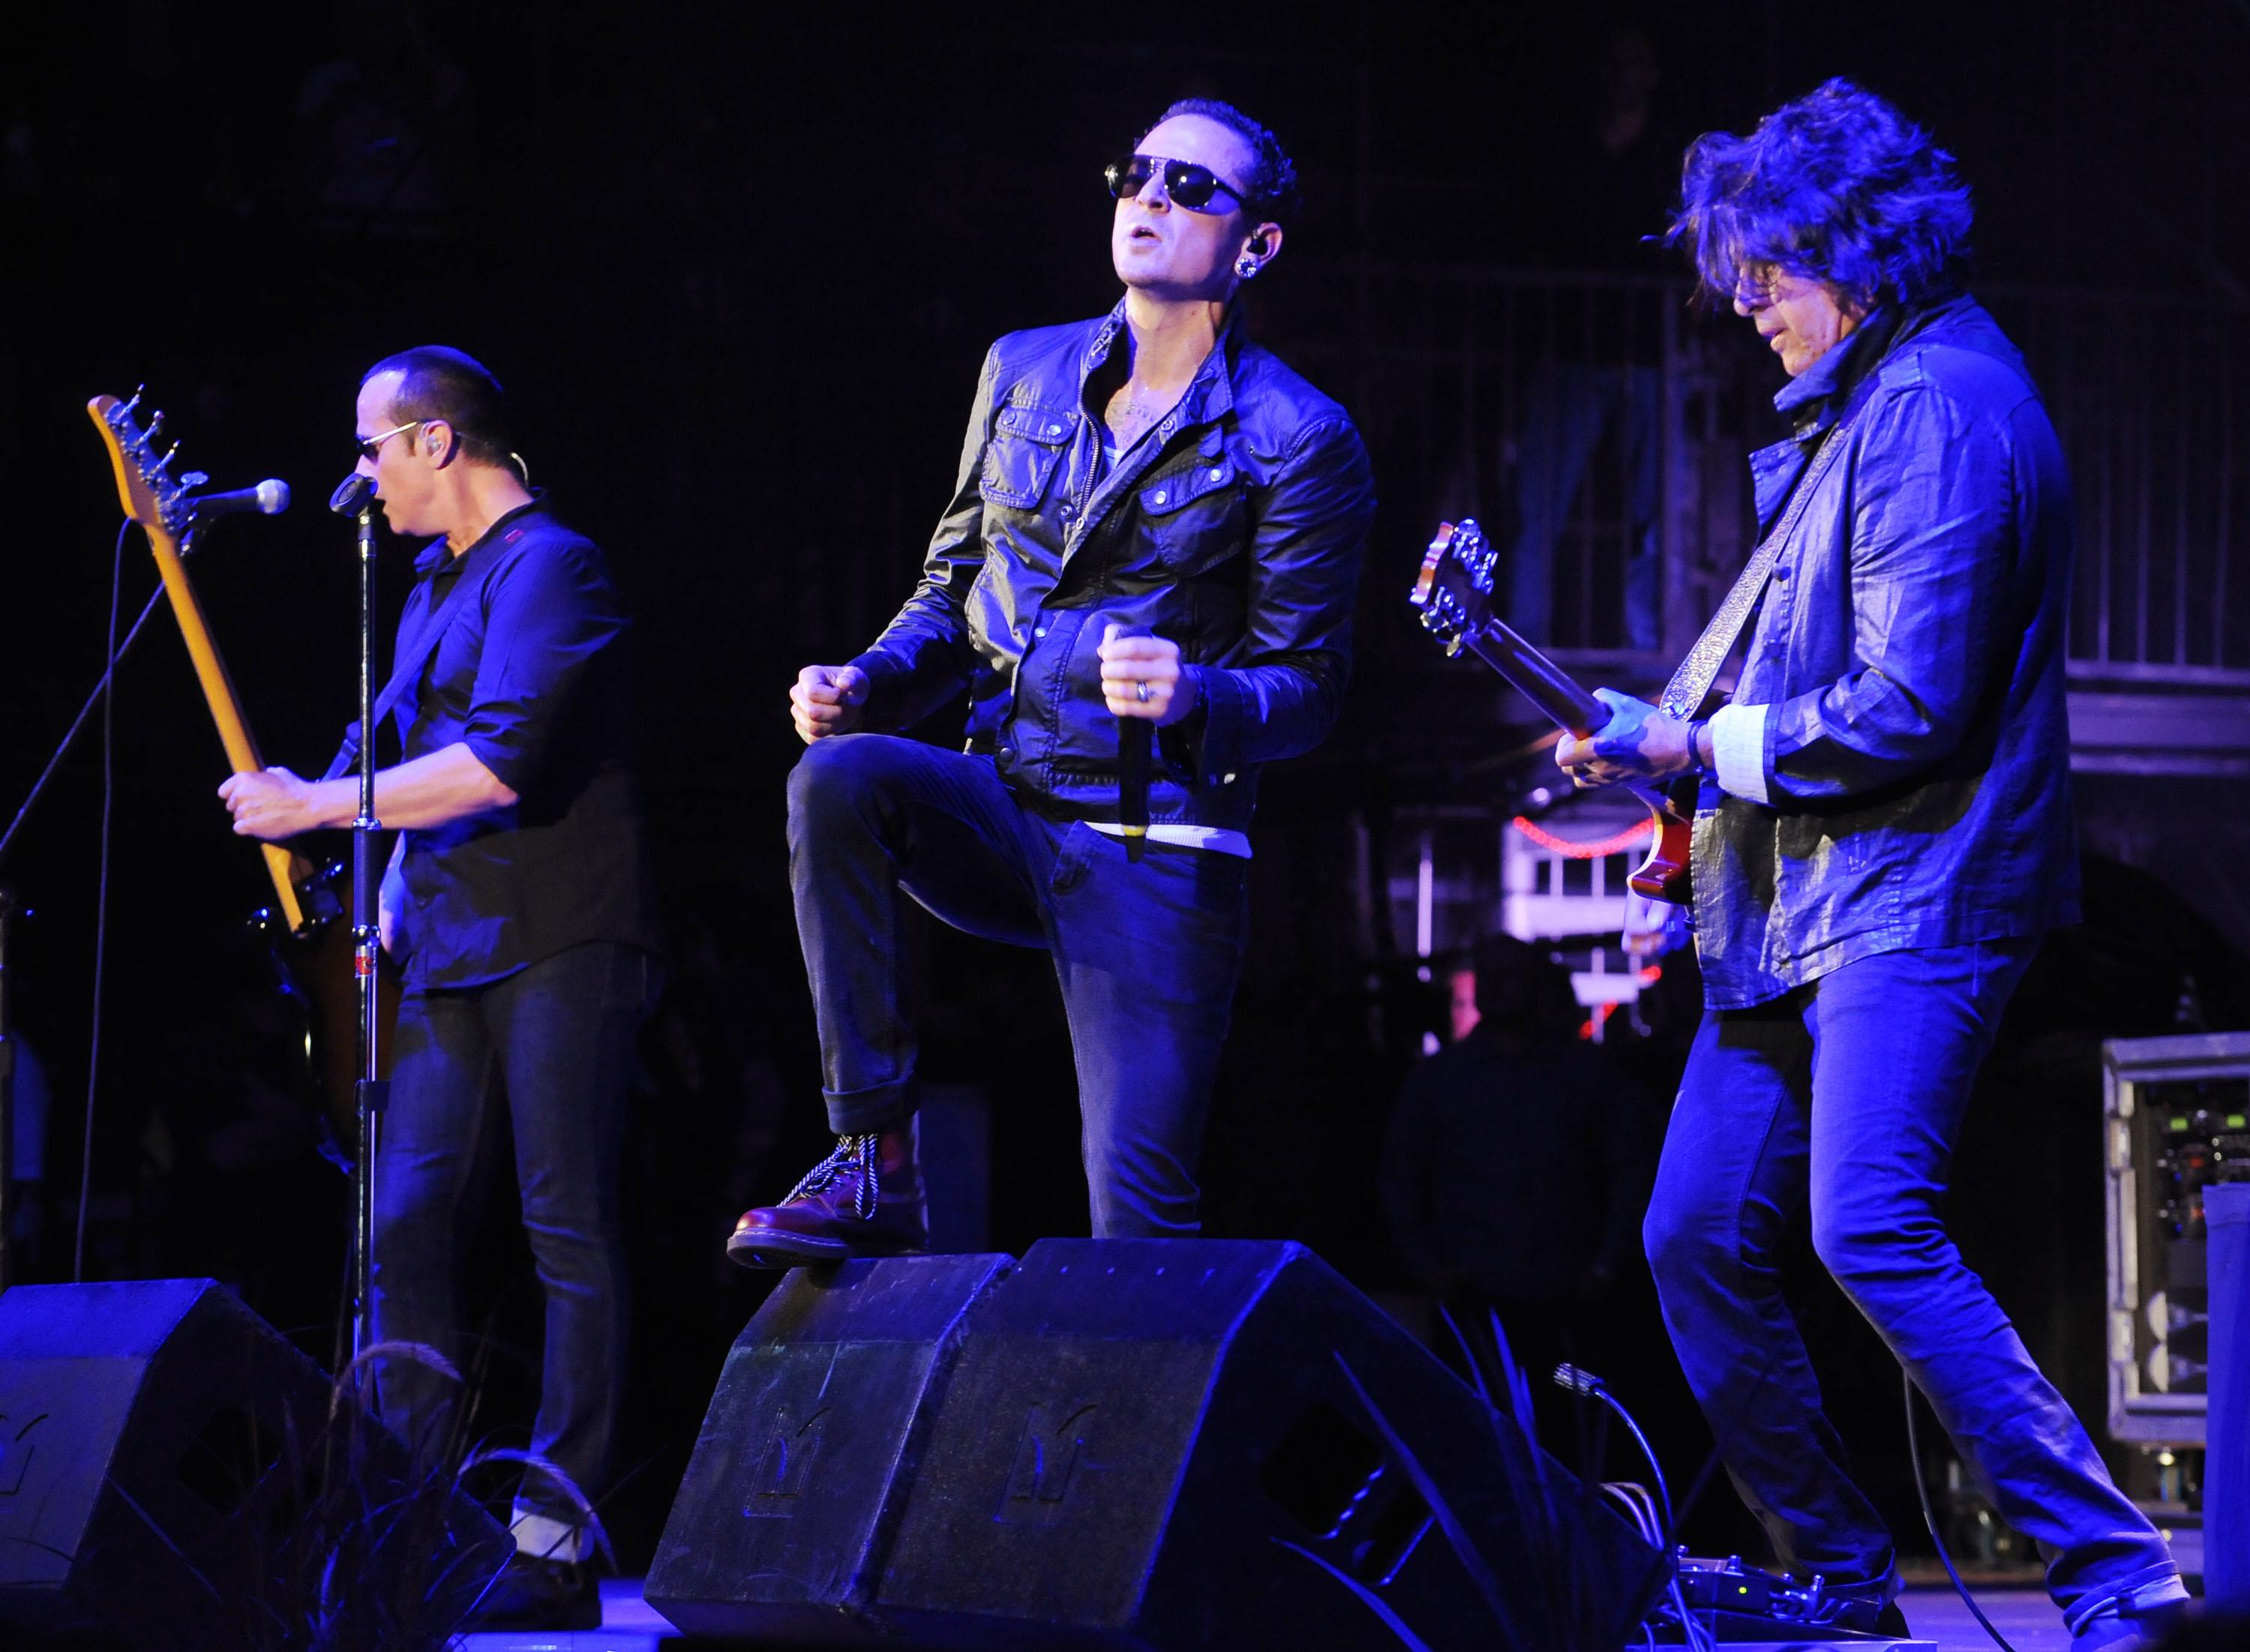 FILE - In this Saturday, May 18, 2013 file photo, Stone Temple Pilots performs at the 2013 KROQ Weenie Roast at the Verizon Wireless Amphitheatre in Los Angeles. Stone Temple Pilots have accused the band's former frontman Scott Weiland of hijacking its name and songs to promote his solo career. The lawsuit filed Friday, May 24, 2013, in Los Angeles accuses Weiland of being chronically late to concerts and interfering with the release of a new single by the group. (Photo by Katy Winn/Invision/AP, file)